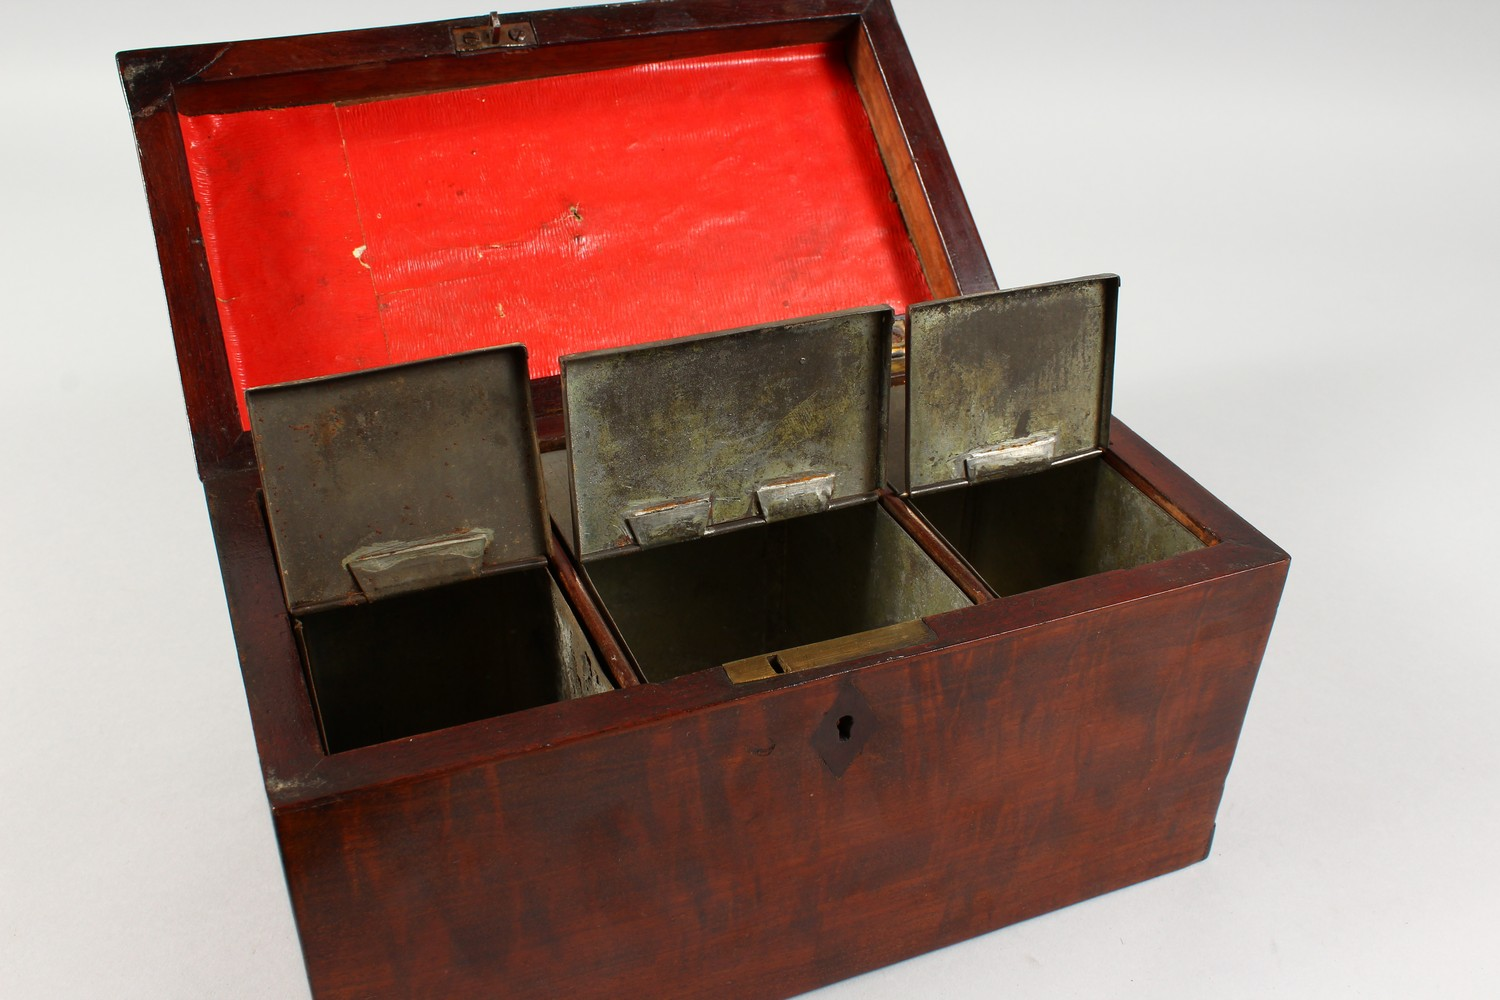 Lot 1484 - A GEORGE III MAHOGANY TEA CADDY, with brass carrying handle and three division interior with tins.